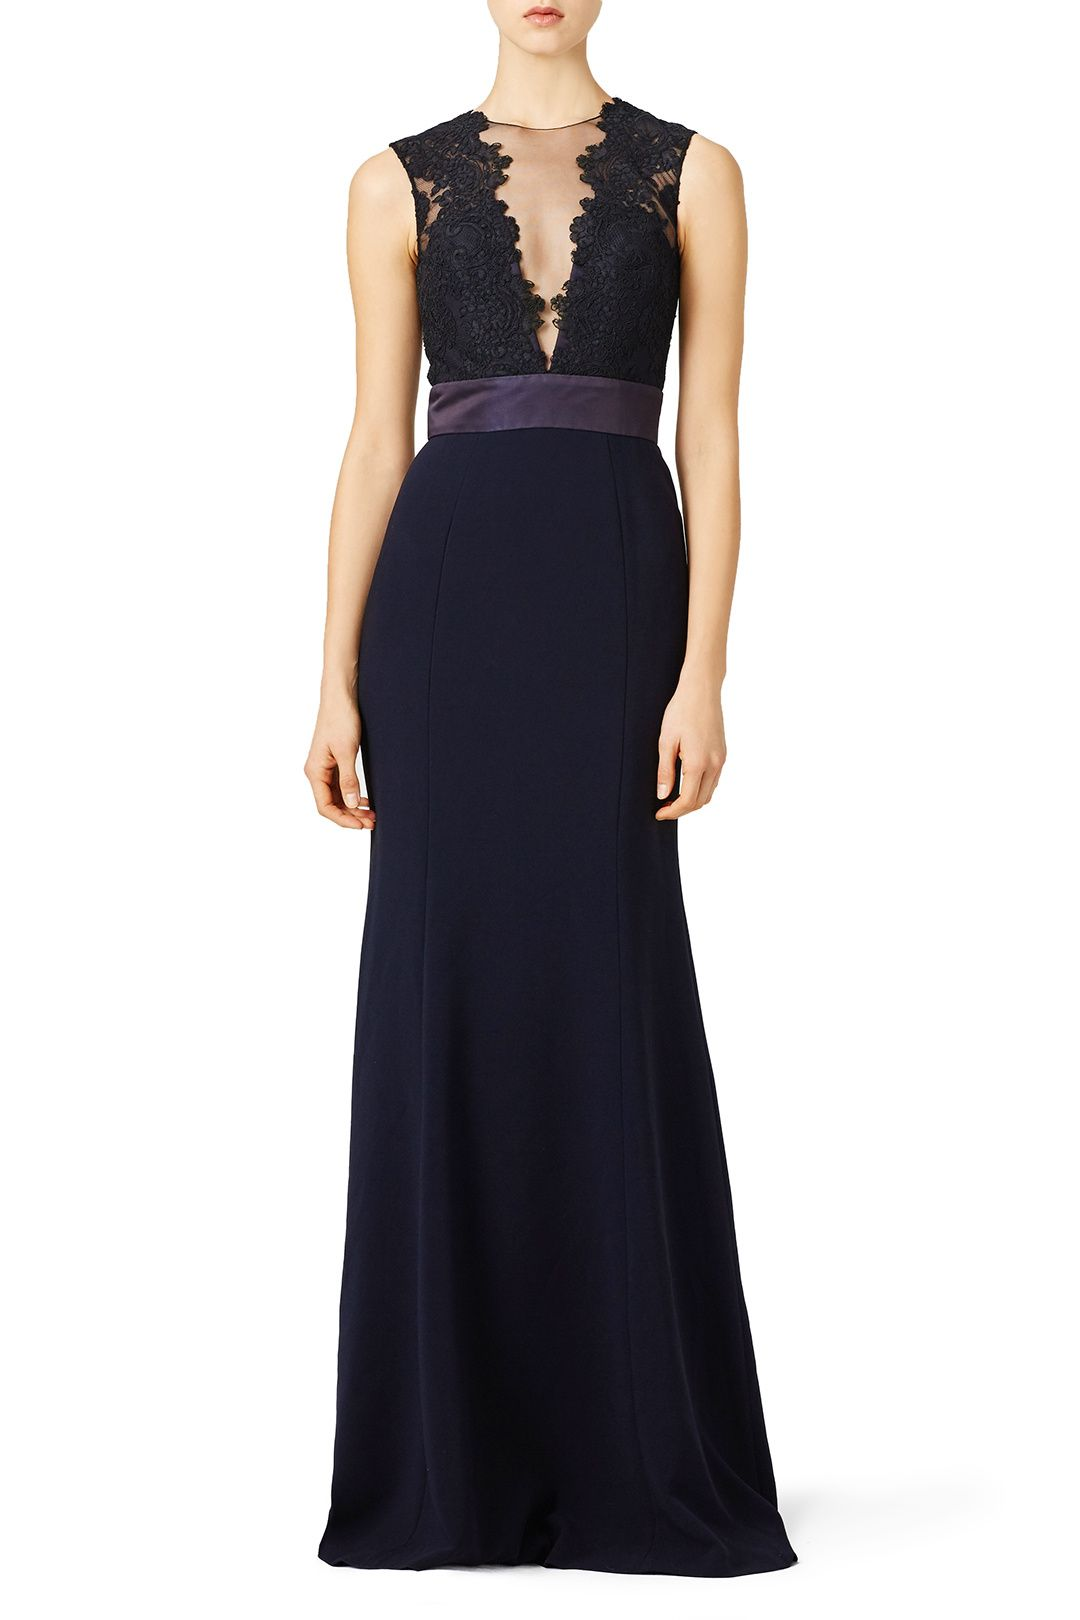 b1e1f5f9 Rent Deep Midnight Gown by Theia for $185 - $200 only at Rent the Runway.